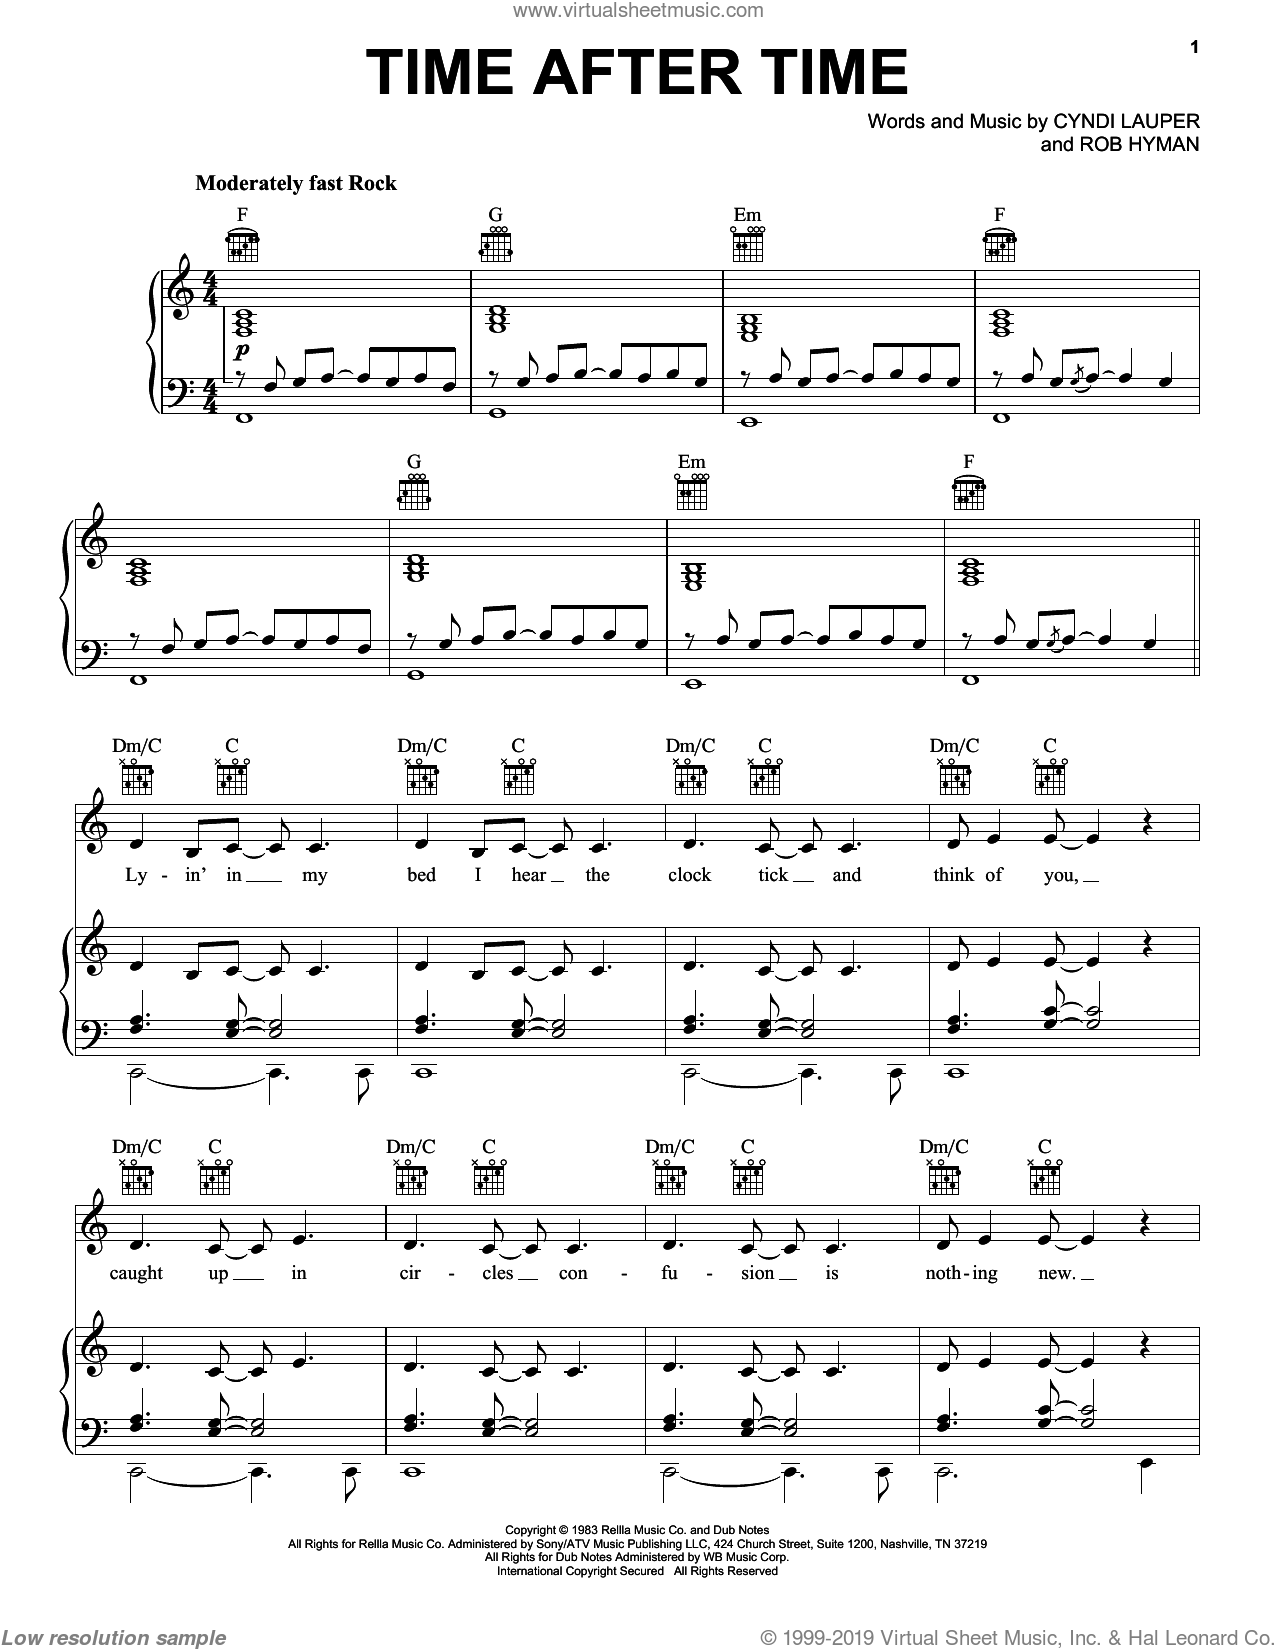 Time After Time sheet music for voice, piano or guitar by Cyndi Lauper, Inoj and Rob Hyman, intermediate skill level